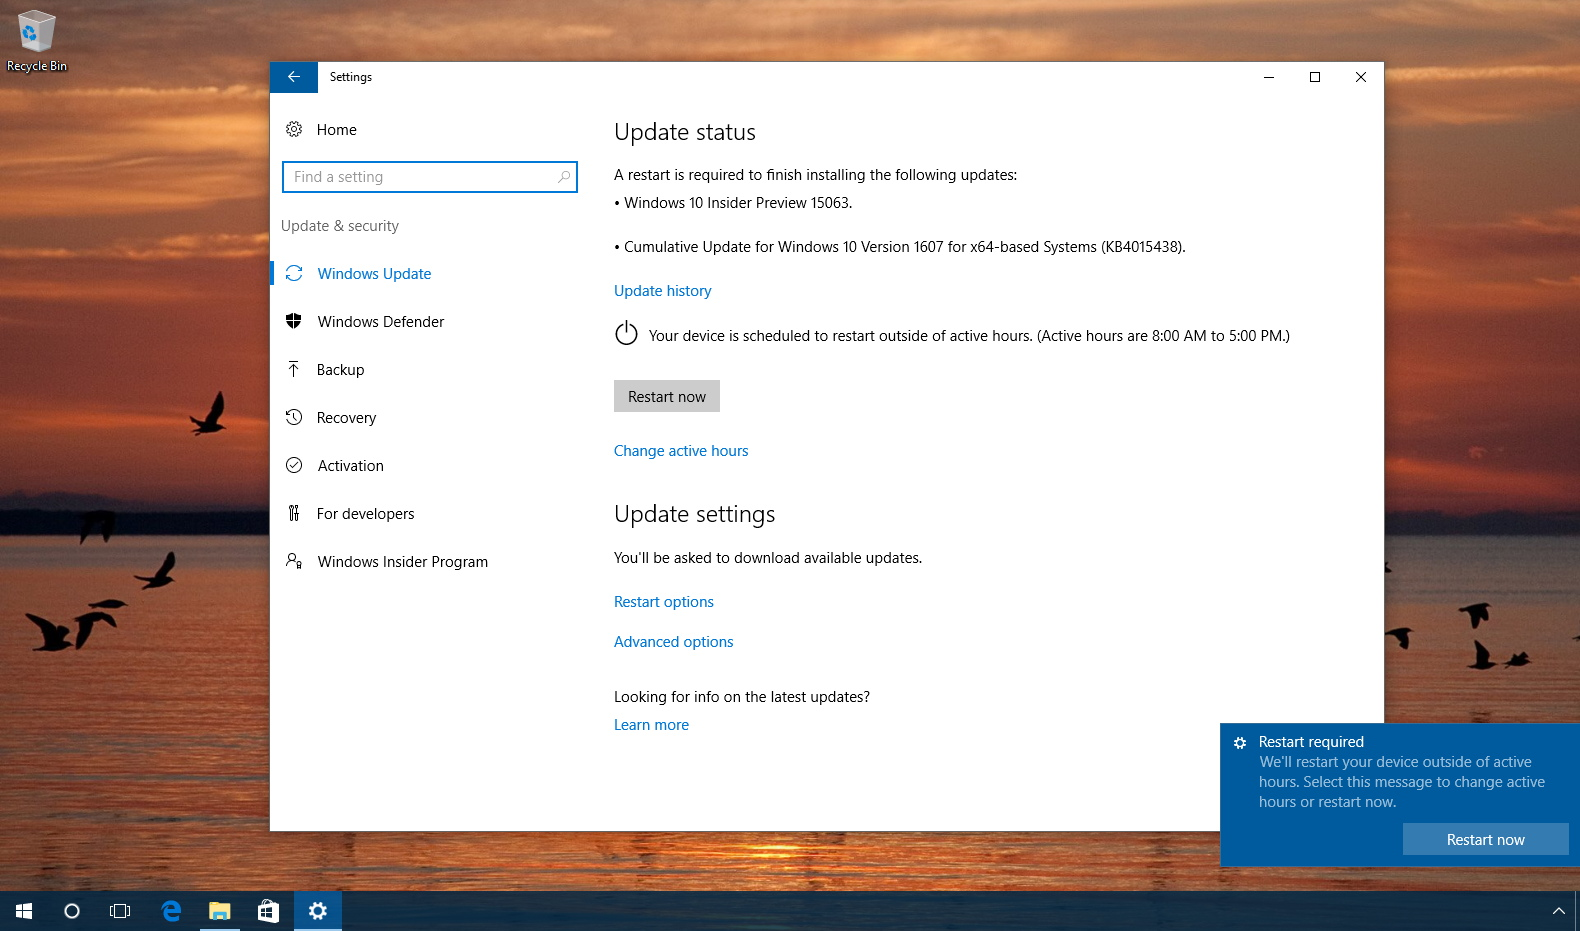 Windows 10 Creators Update on the Release Preview